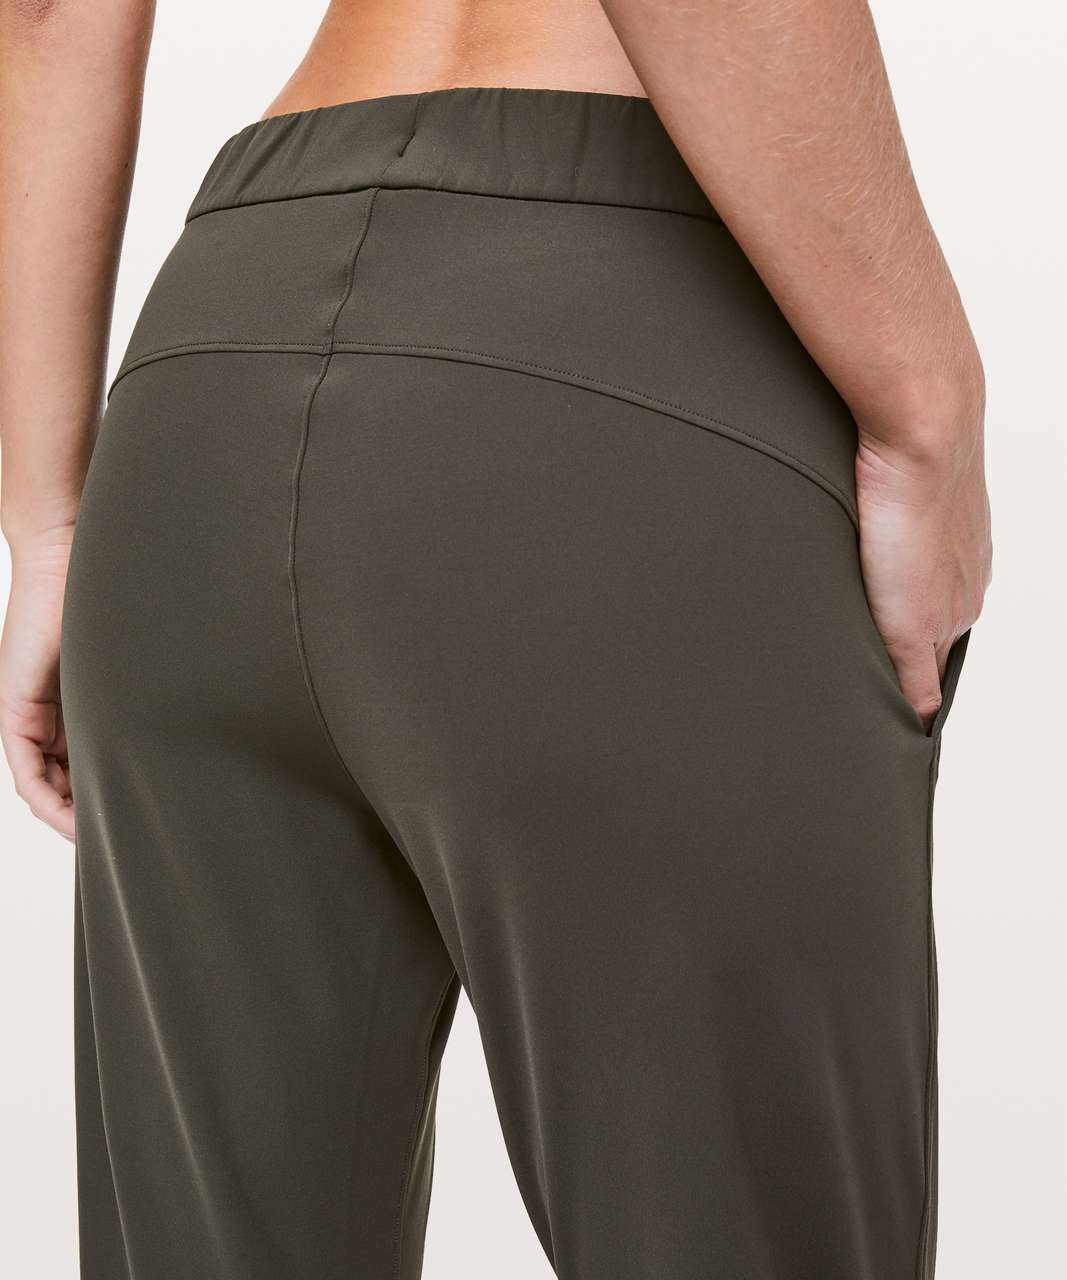 """Lululemon On The Fly Crop *23"""" - Dark Olive (First Release)"""